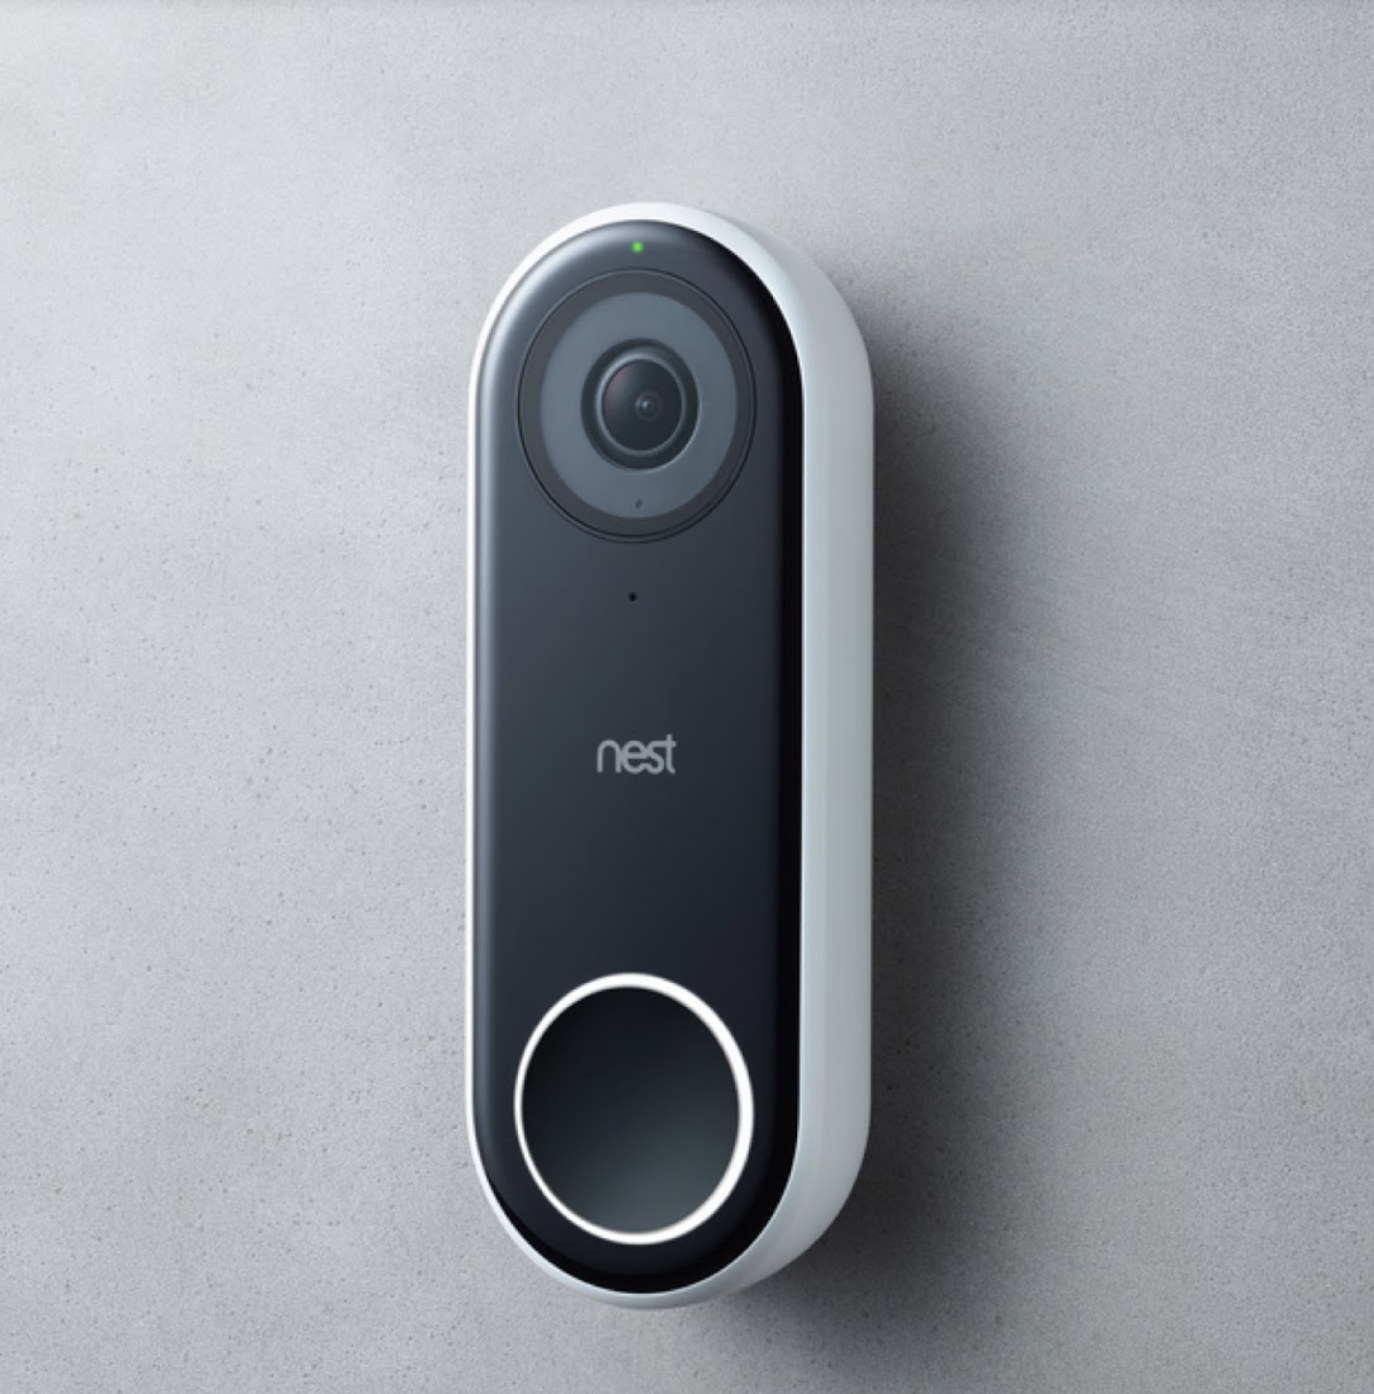 the long oval shaped camera in black with a camera on top and circle button on the bottom